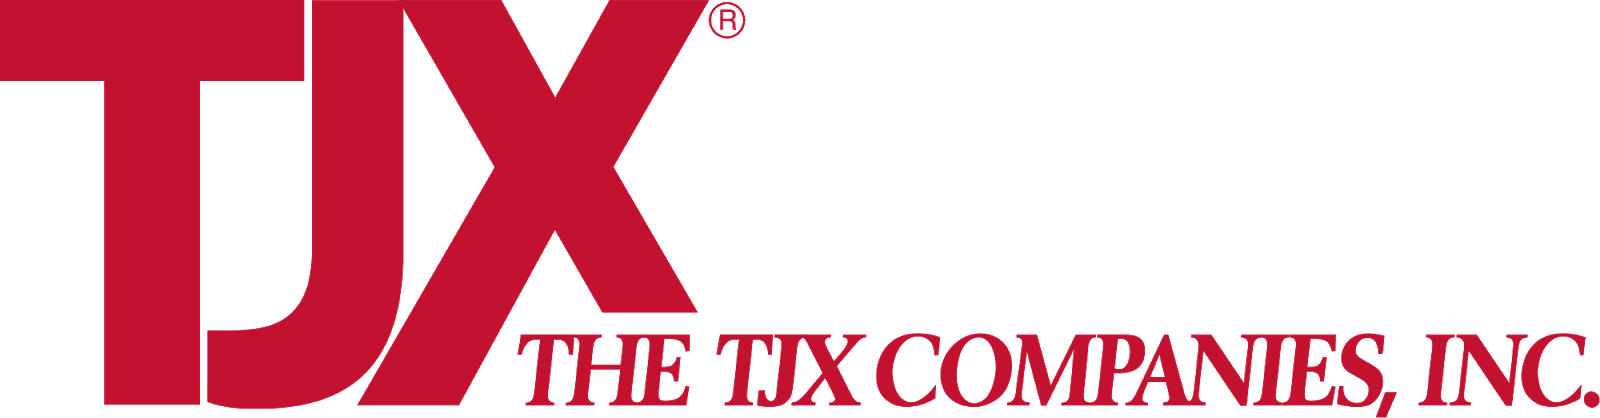 tjx companies inc data breach